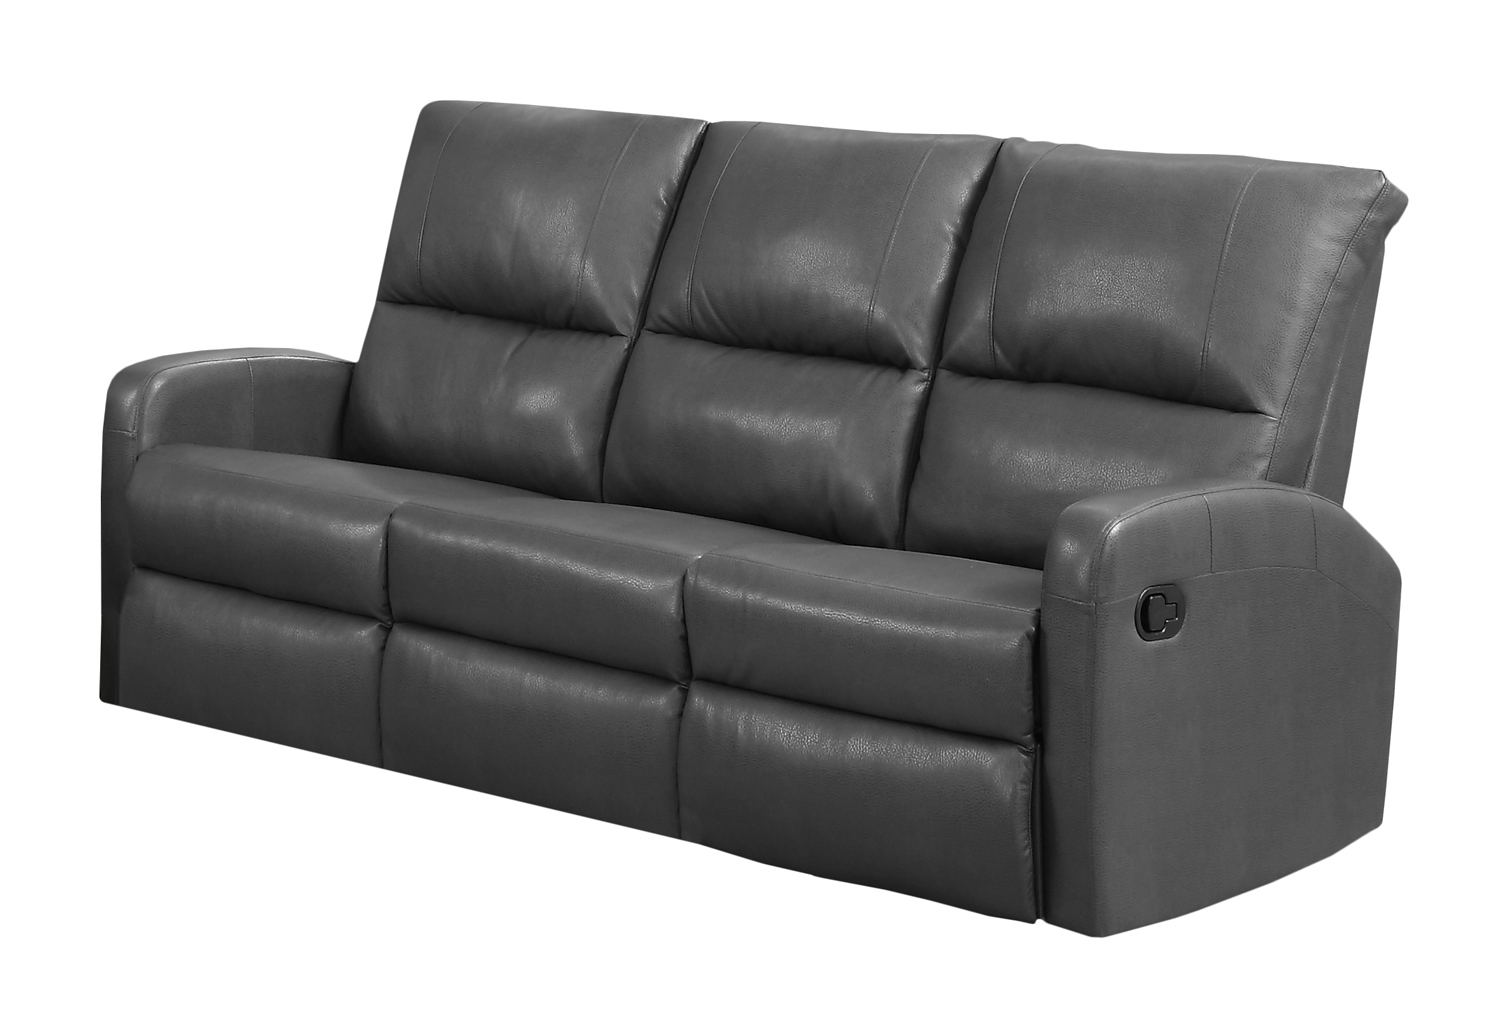 Reclining-Sofa Charcoal Grey Bonded Leather